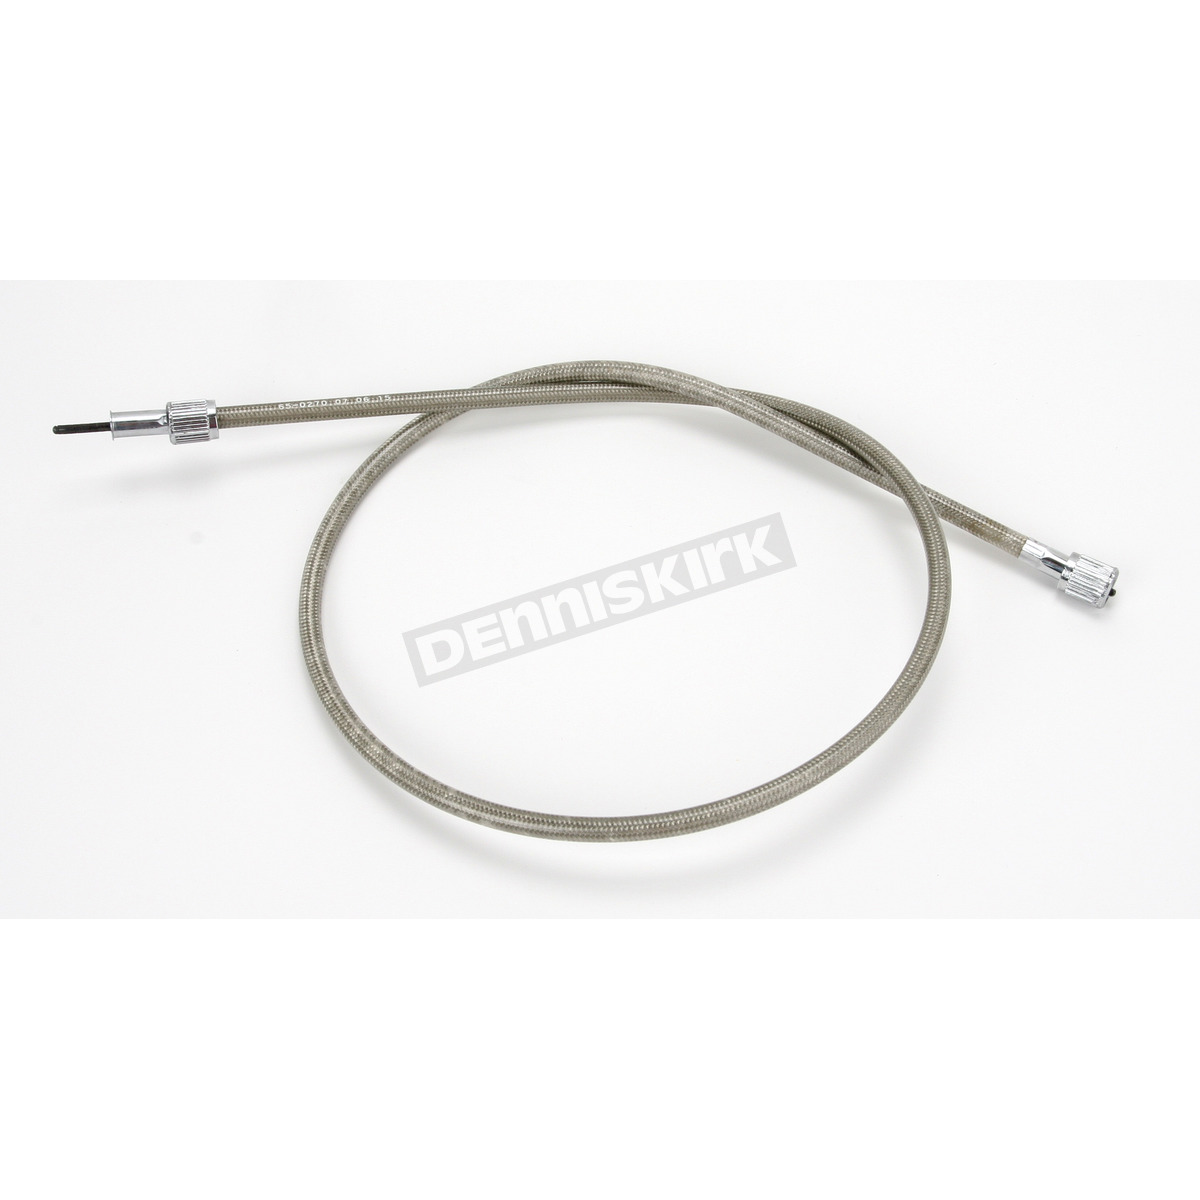 Armored Cable Stainless : Motion pro in armor coat braided stainless steel